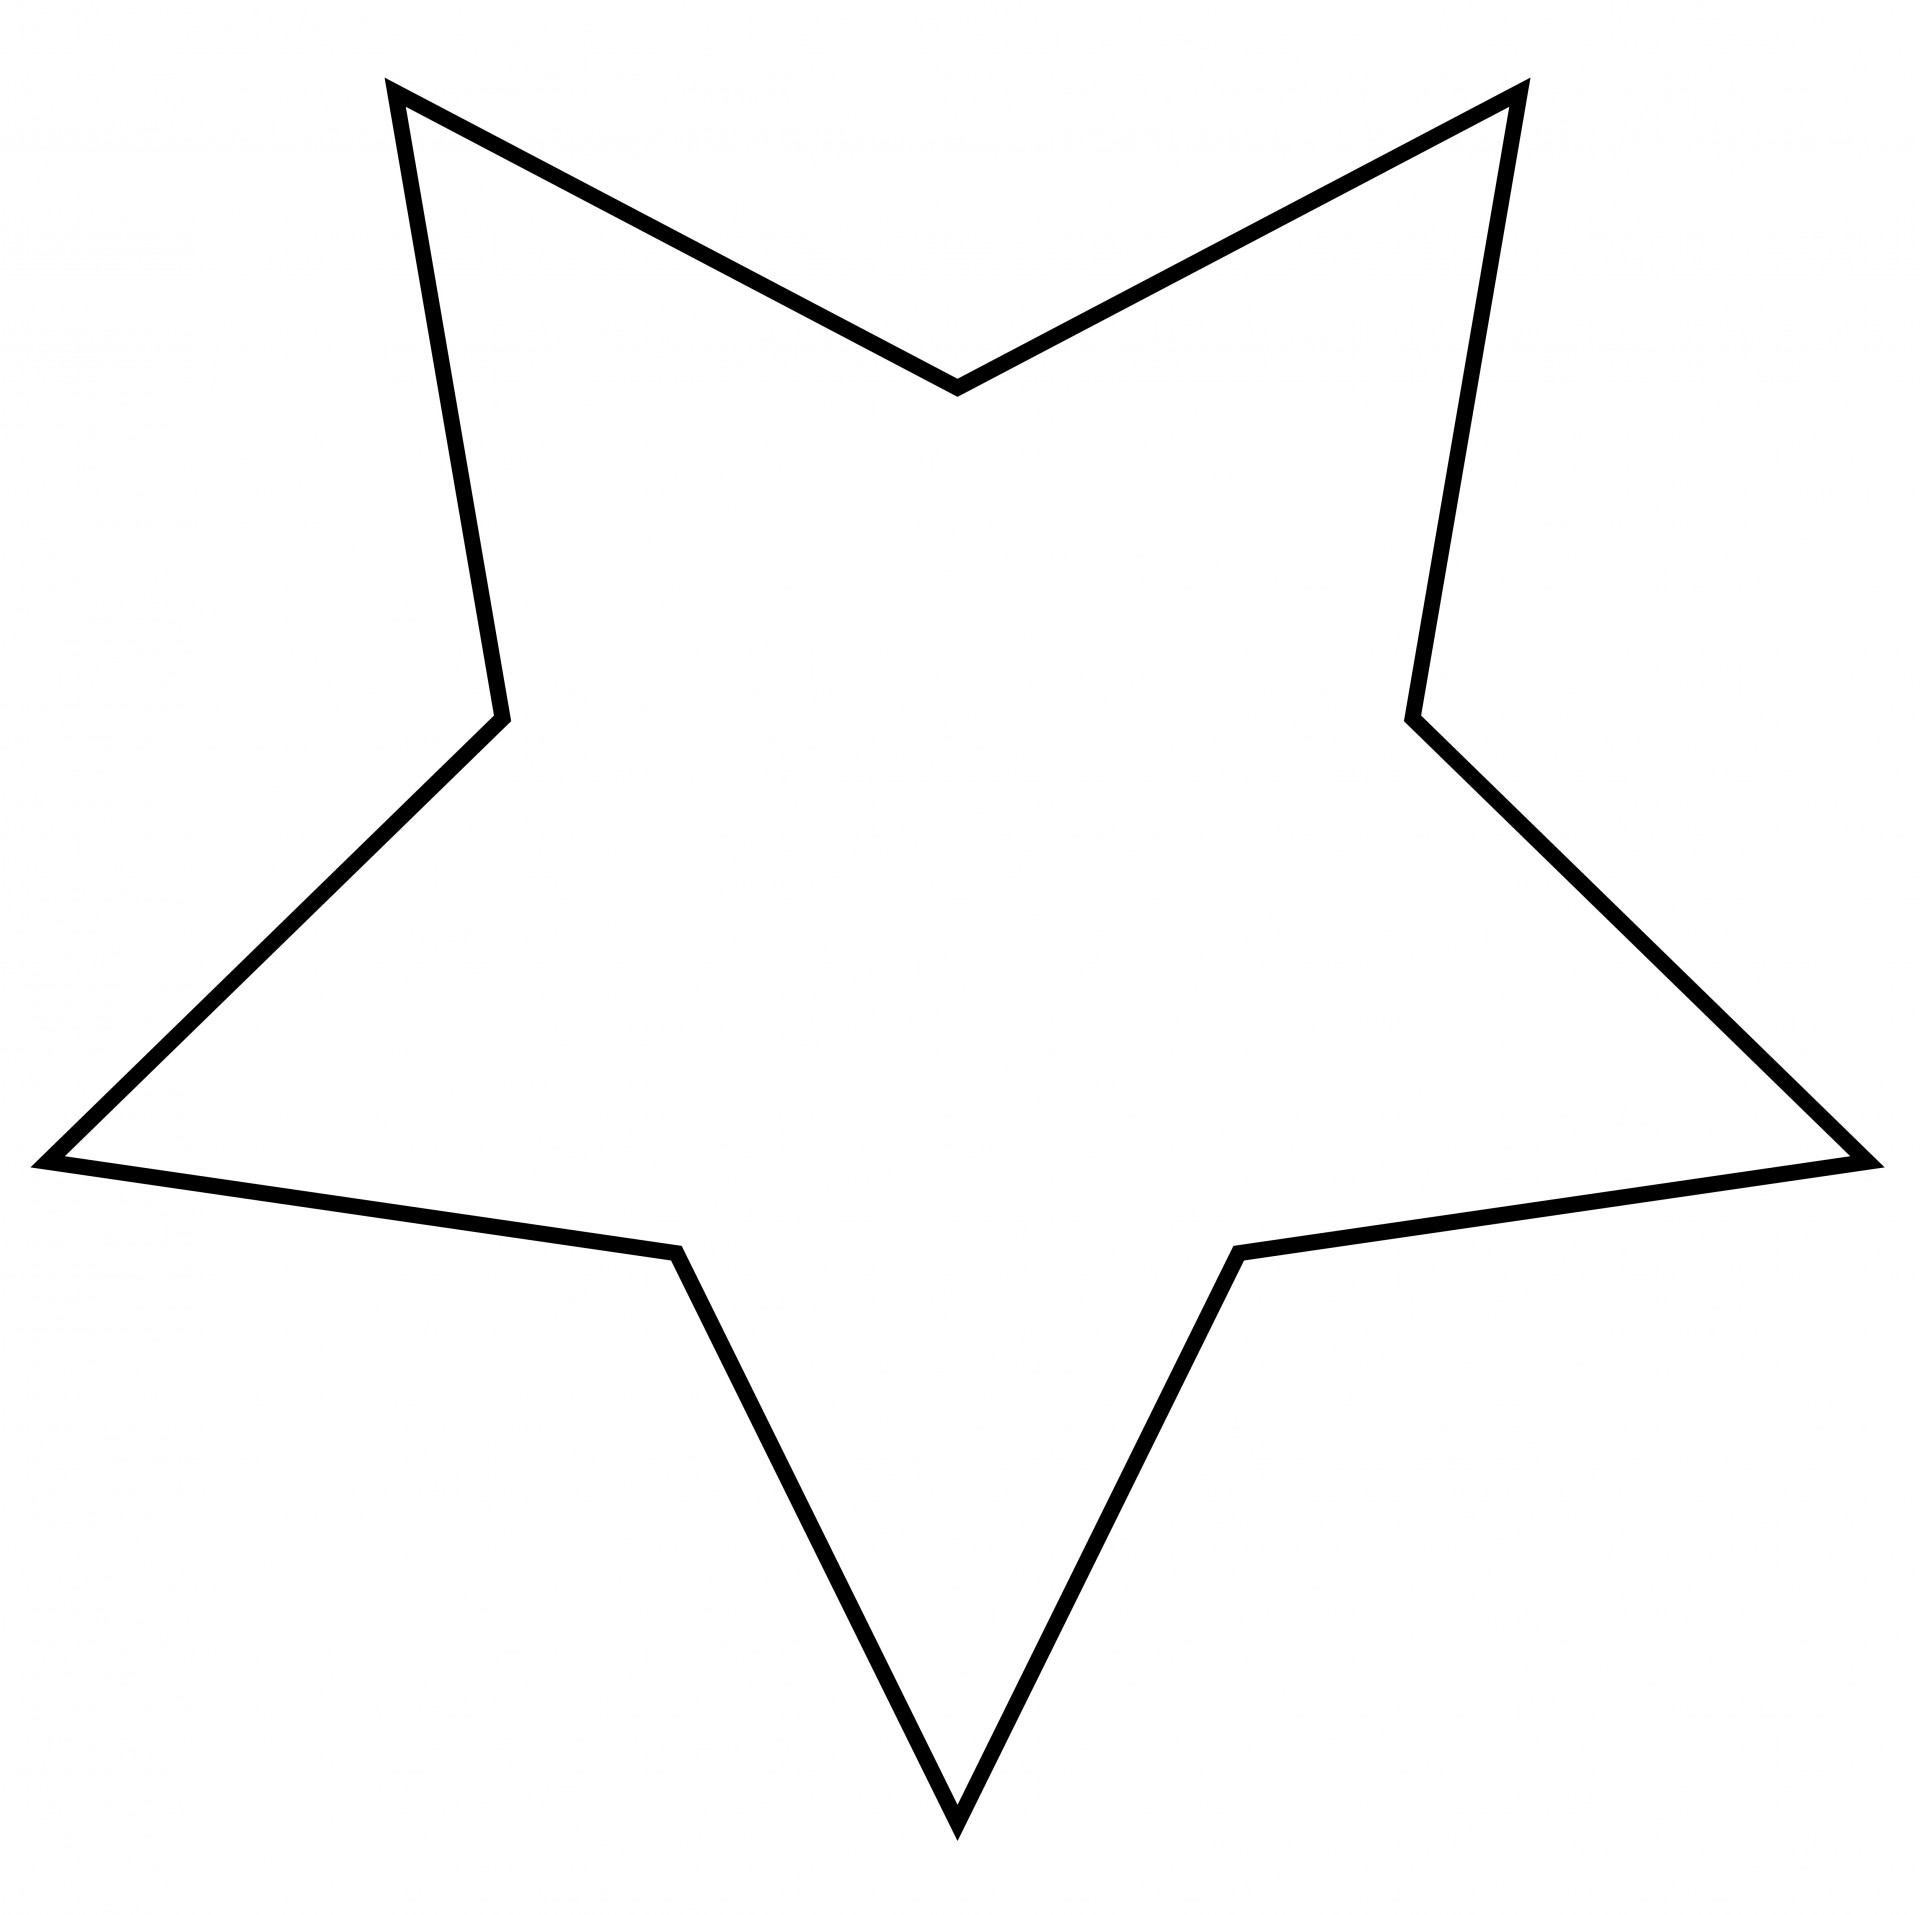 Star free stock photo. Outline clipart